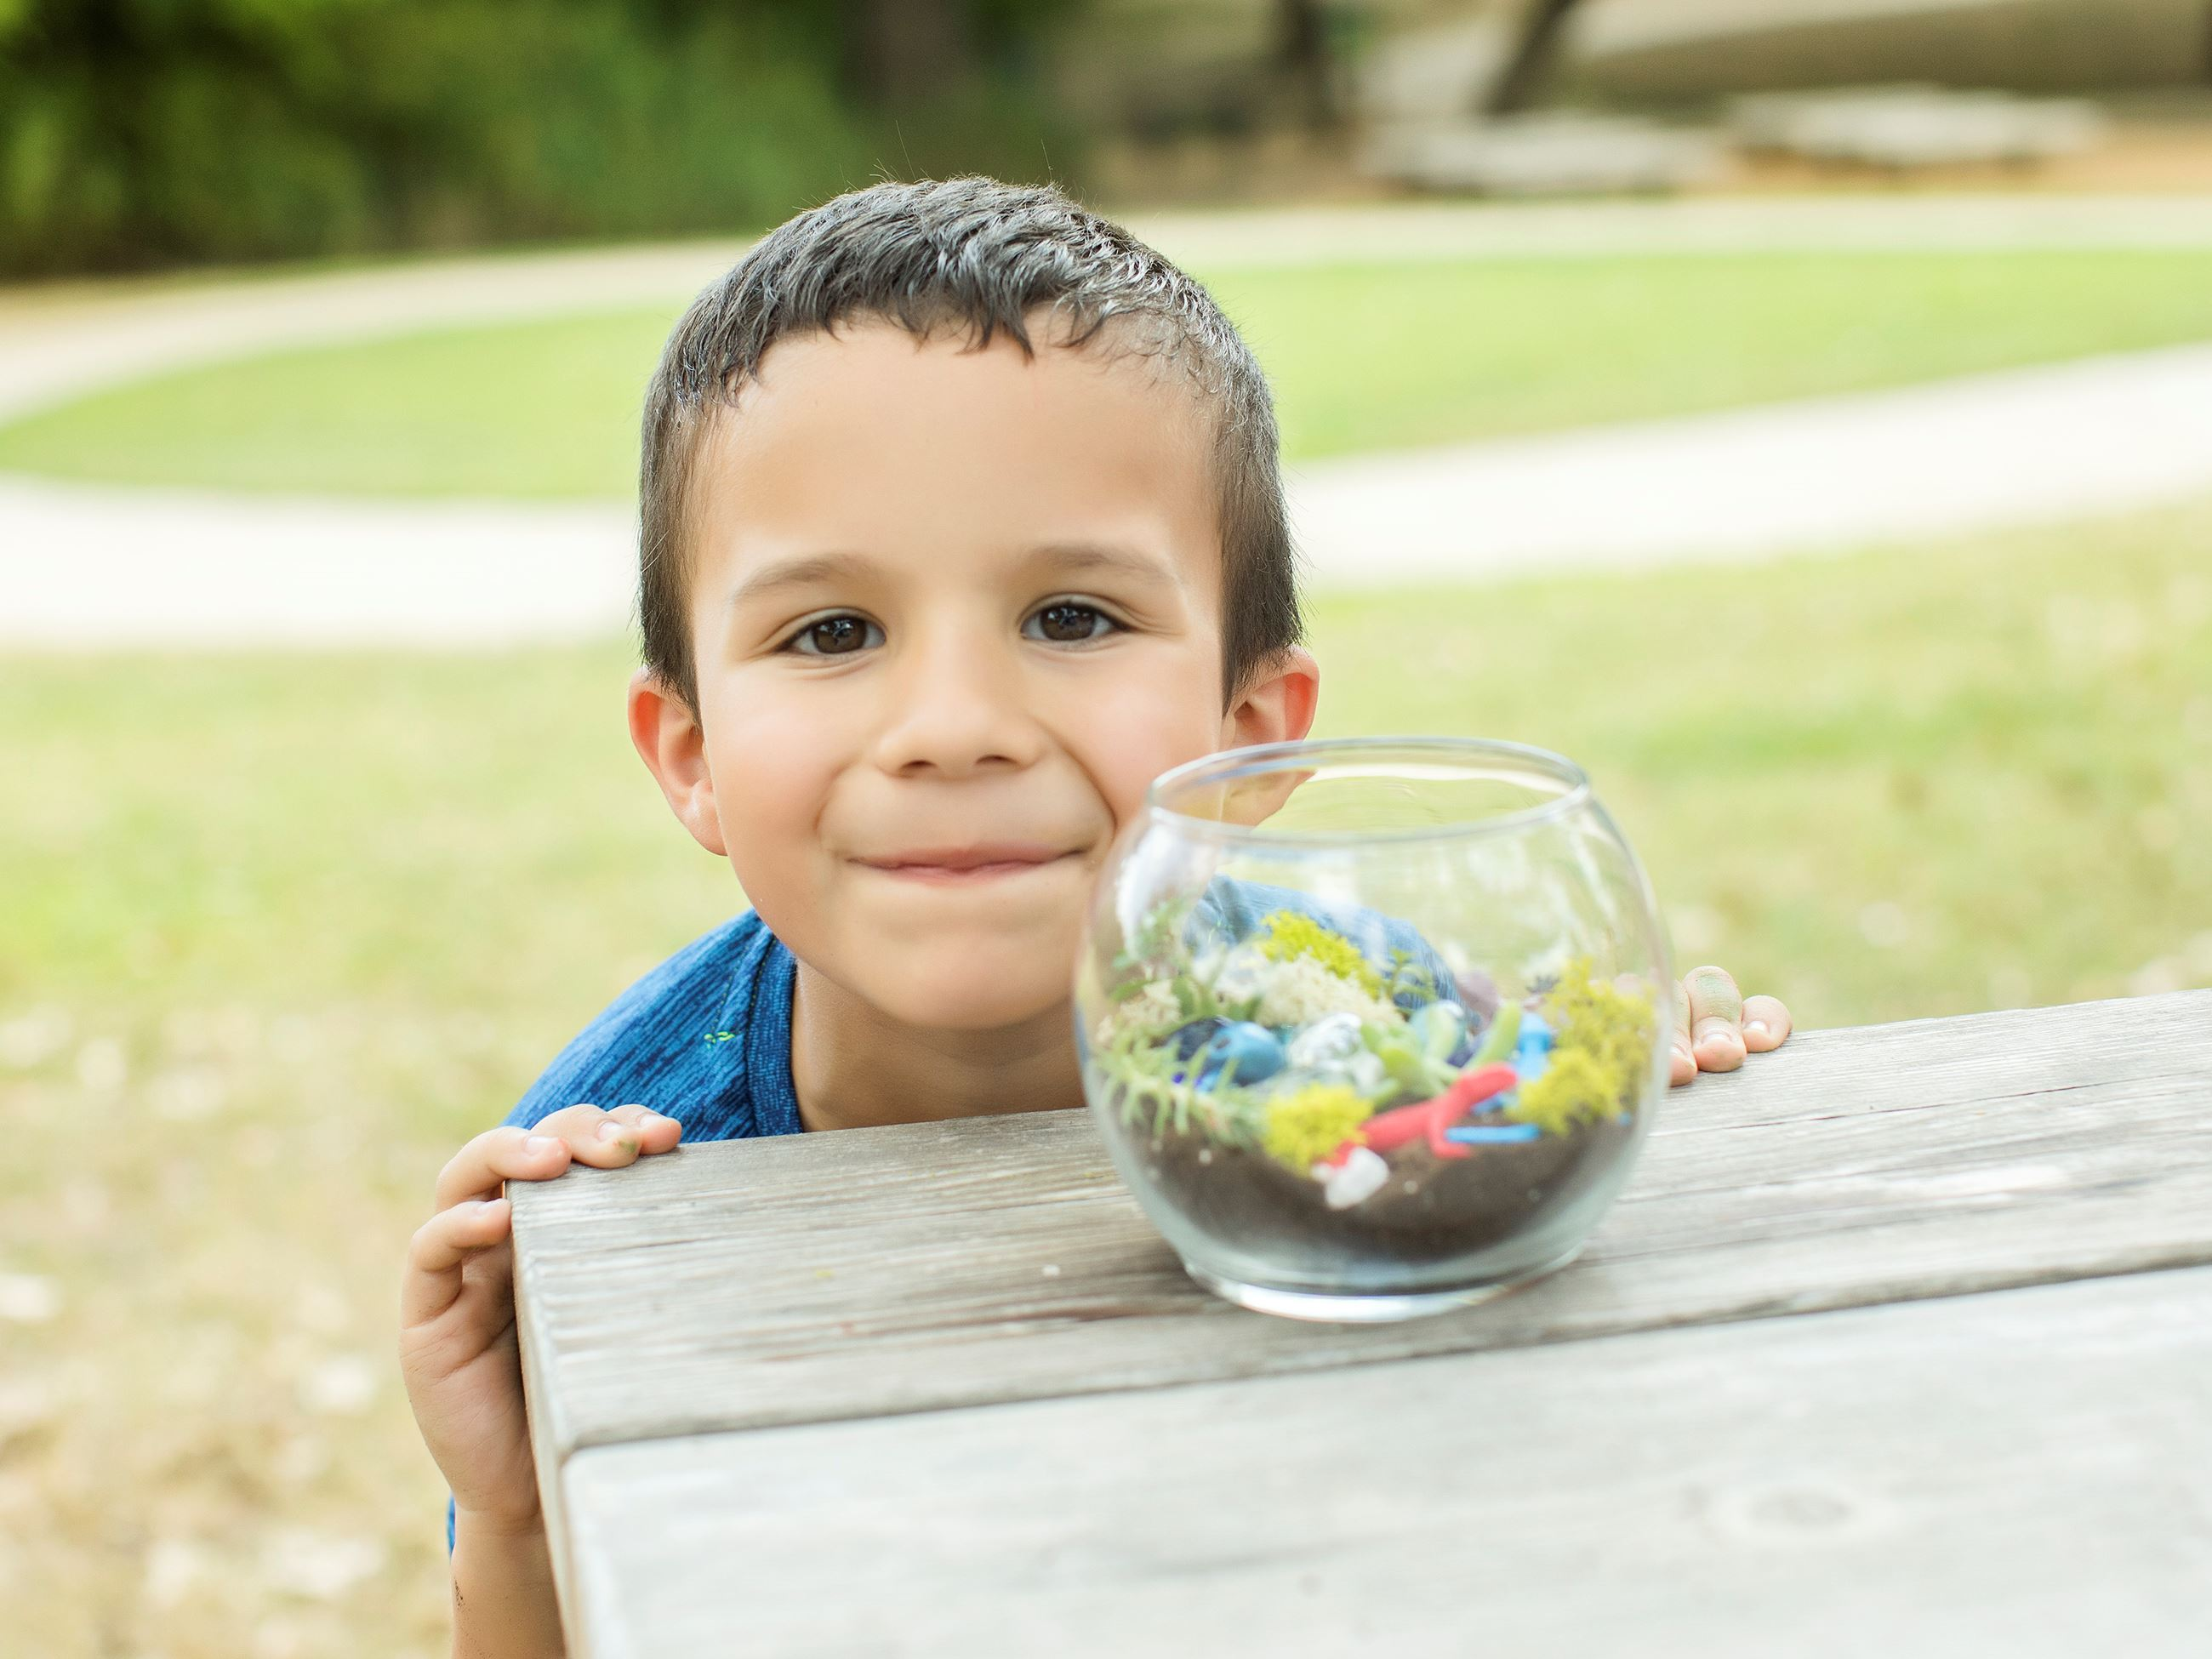 Boy looking with glass bowl filled with dirt and dinosaur figures